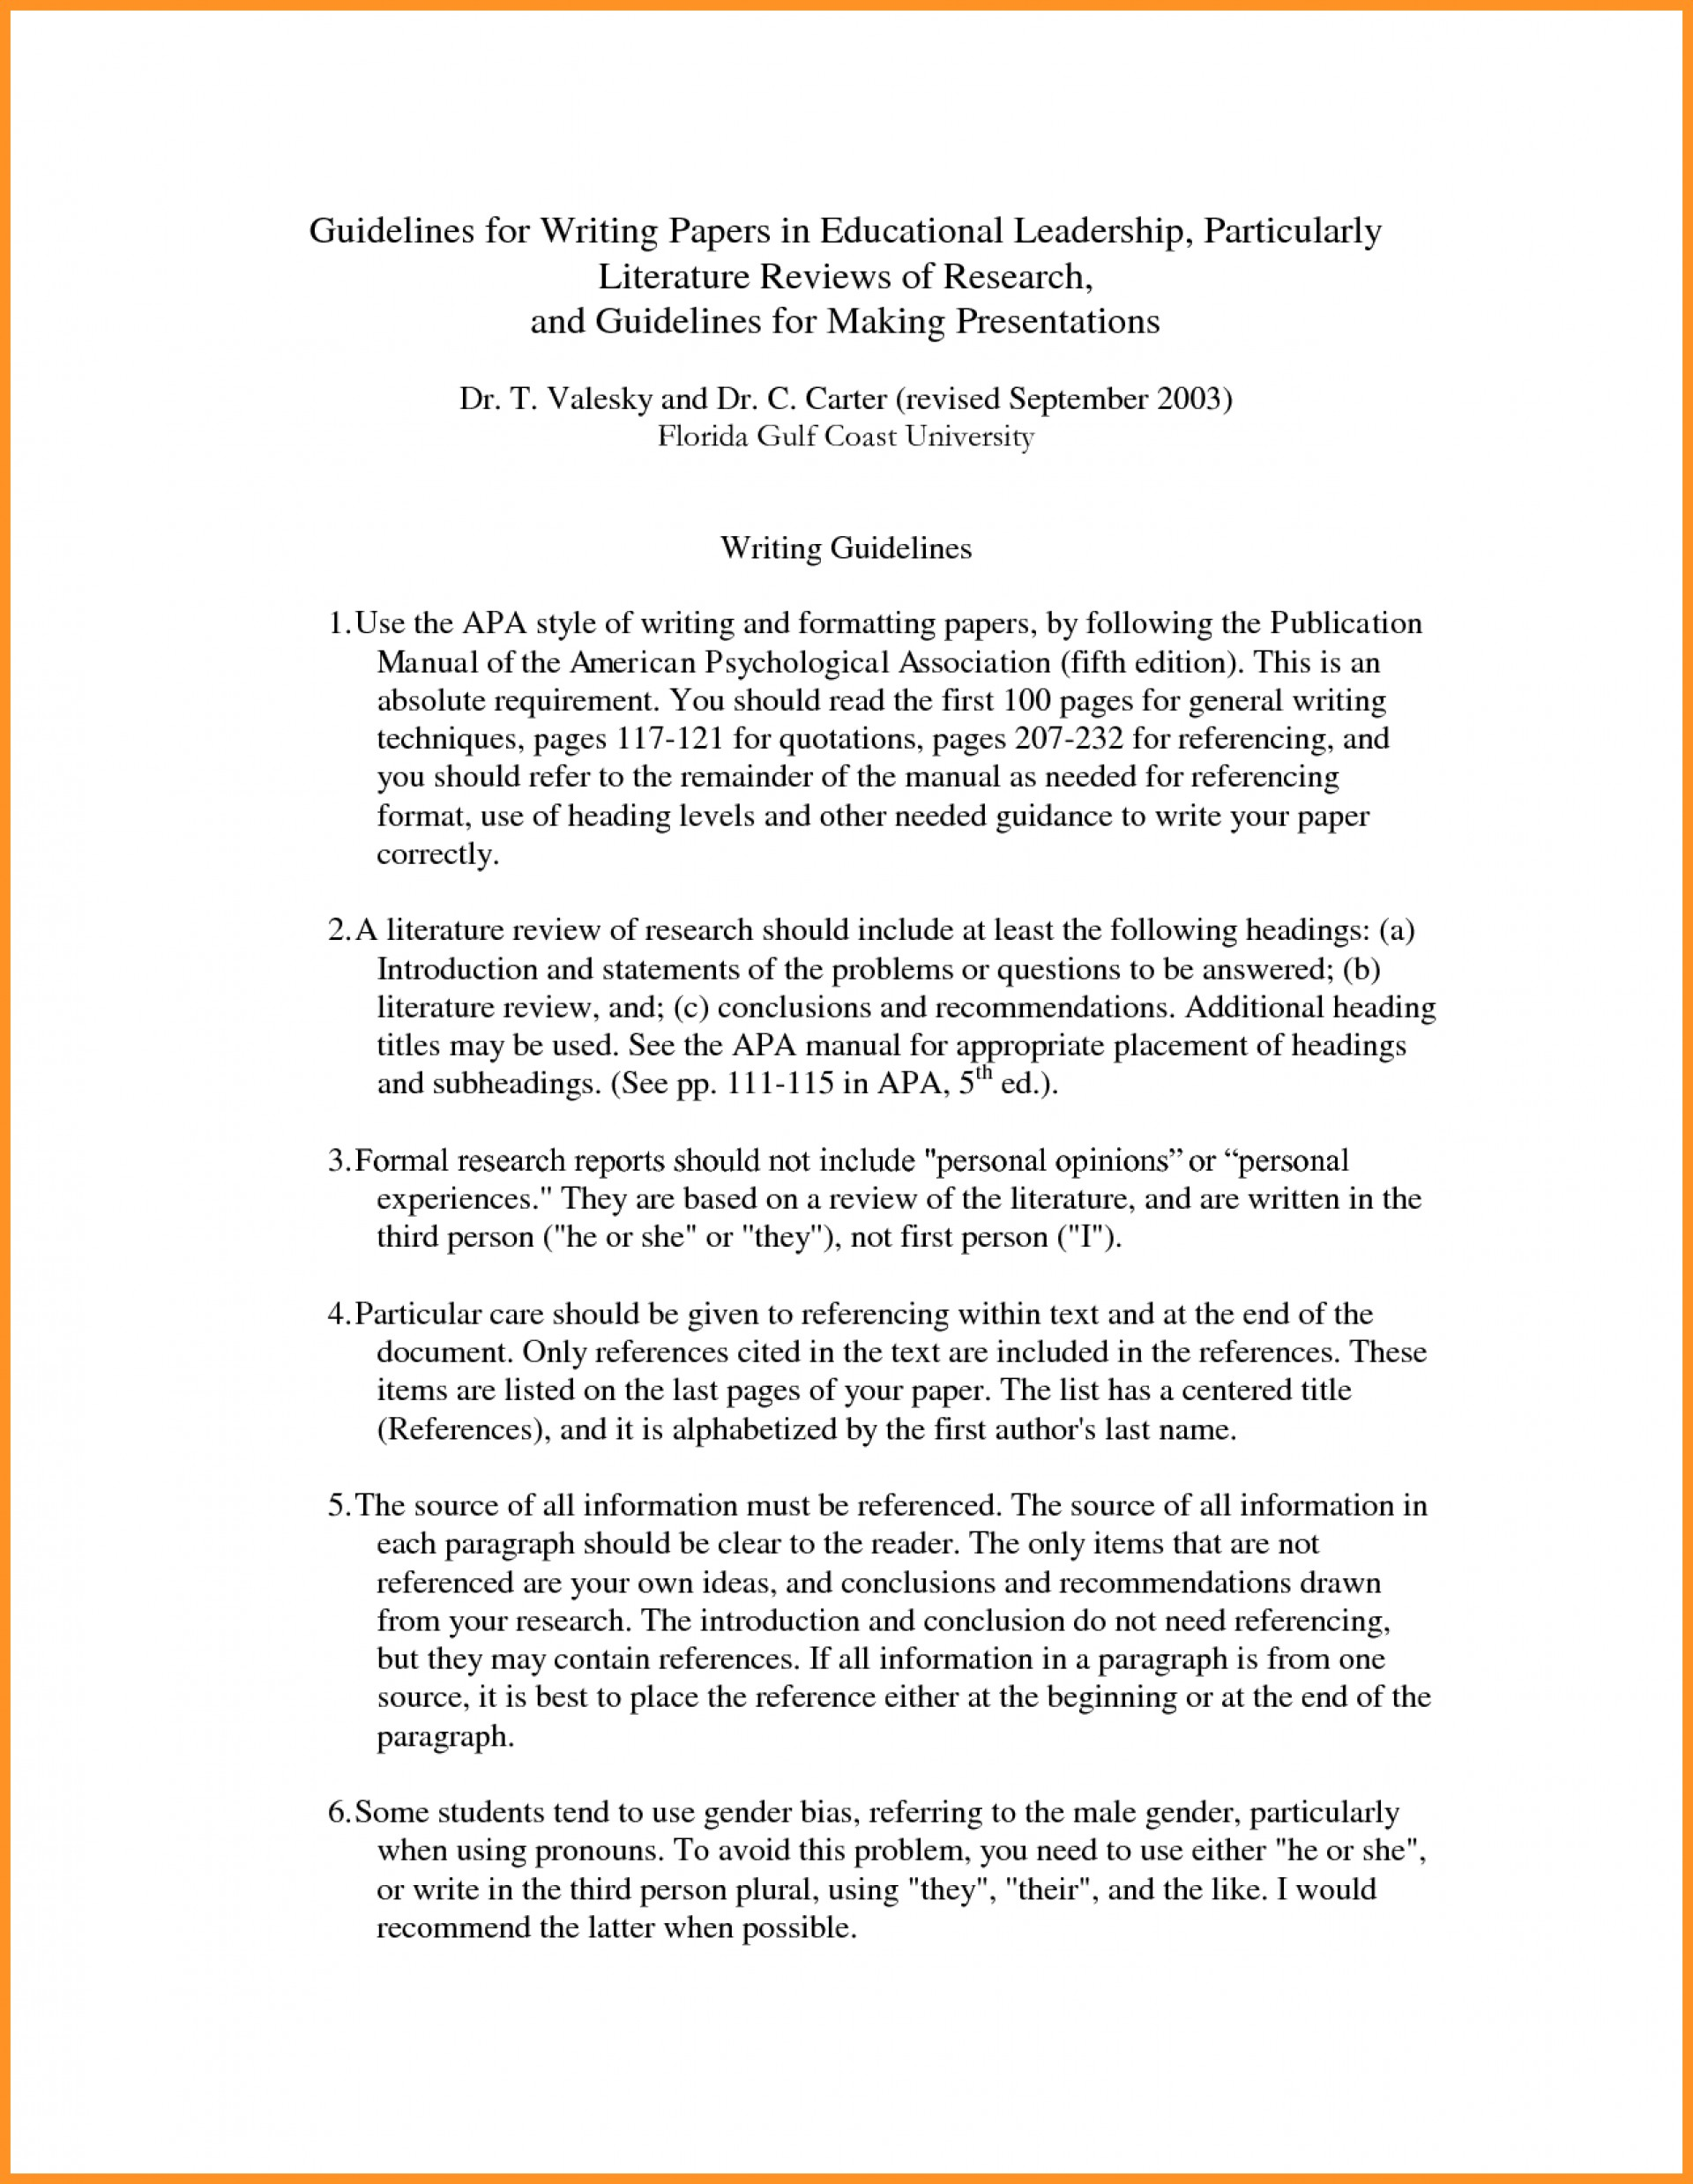 014 Literature Review Sample Apa 3 Research Unique Paper 1920